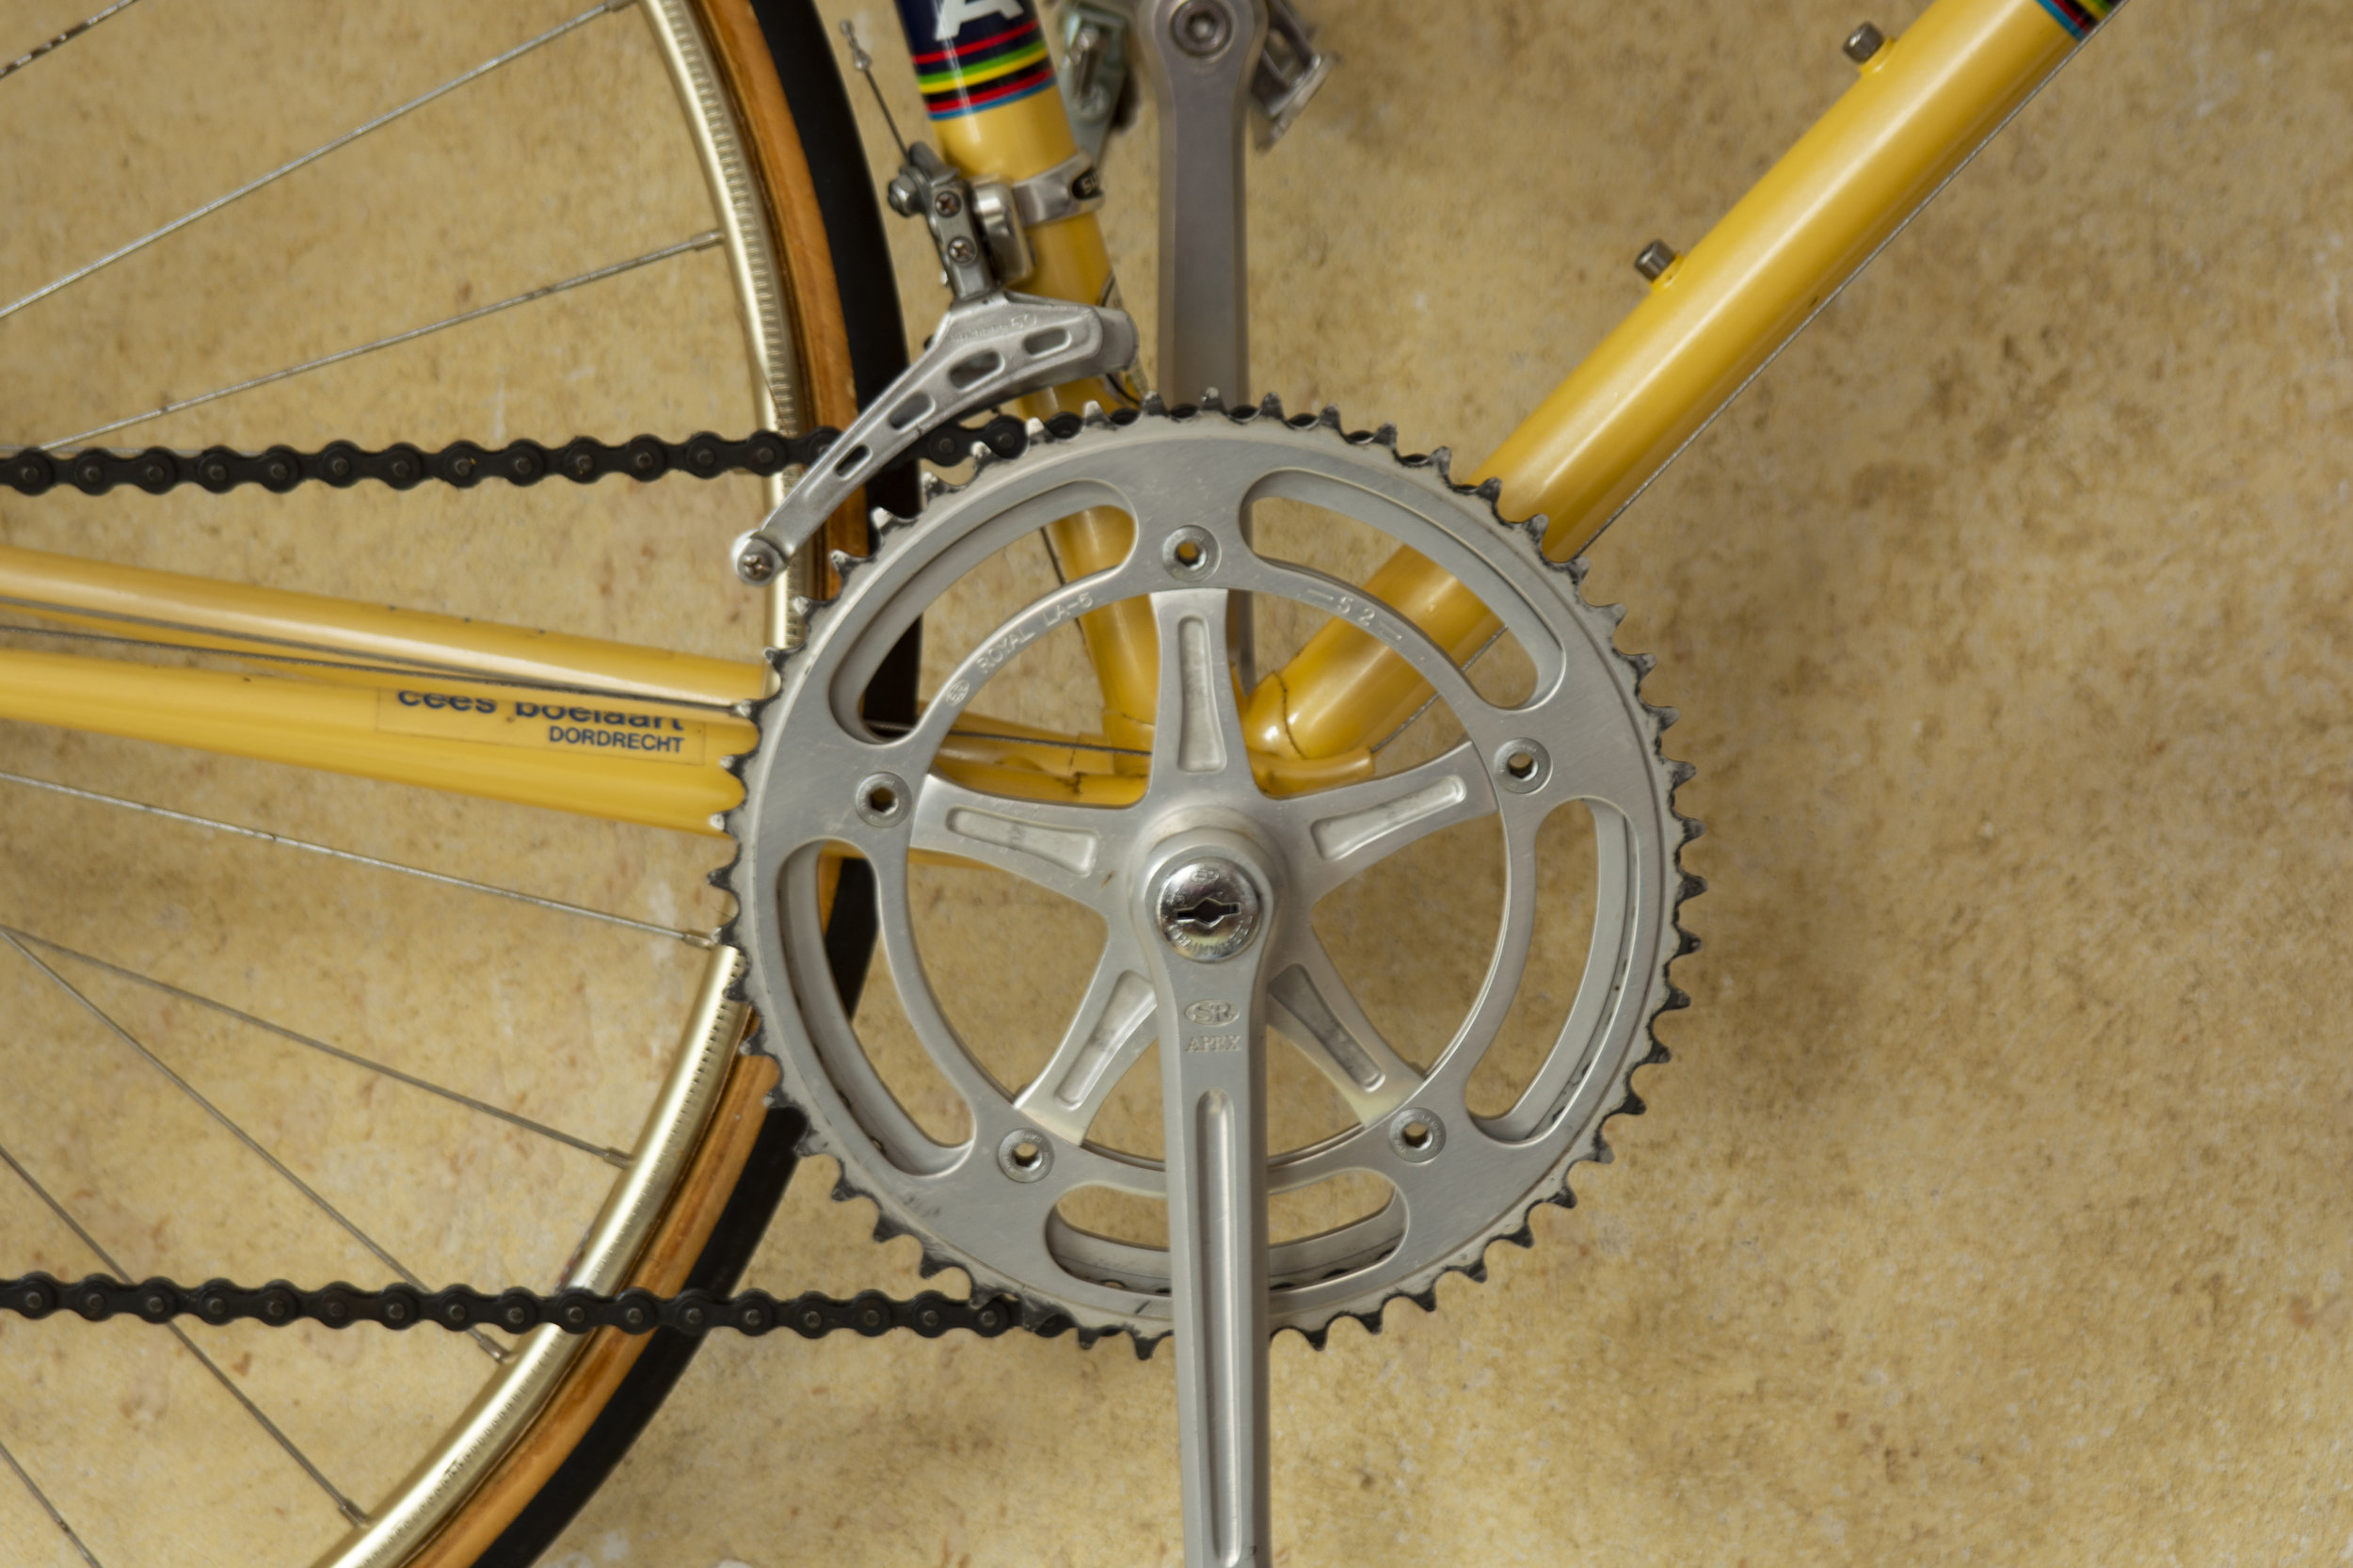 Golden Gears$1,000 - Logo displayed at event, on web page, and marketing materials -